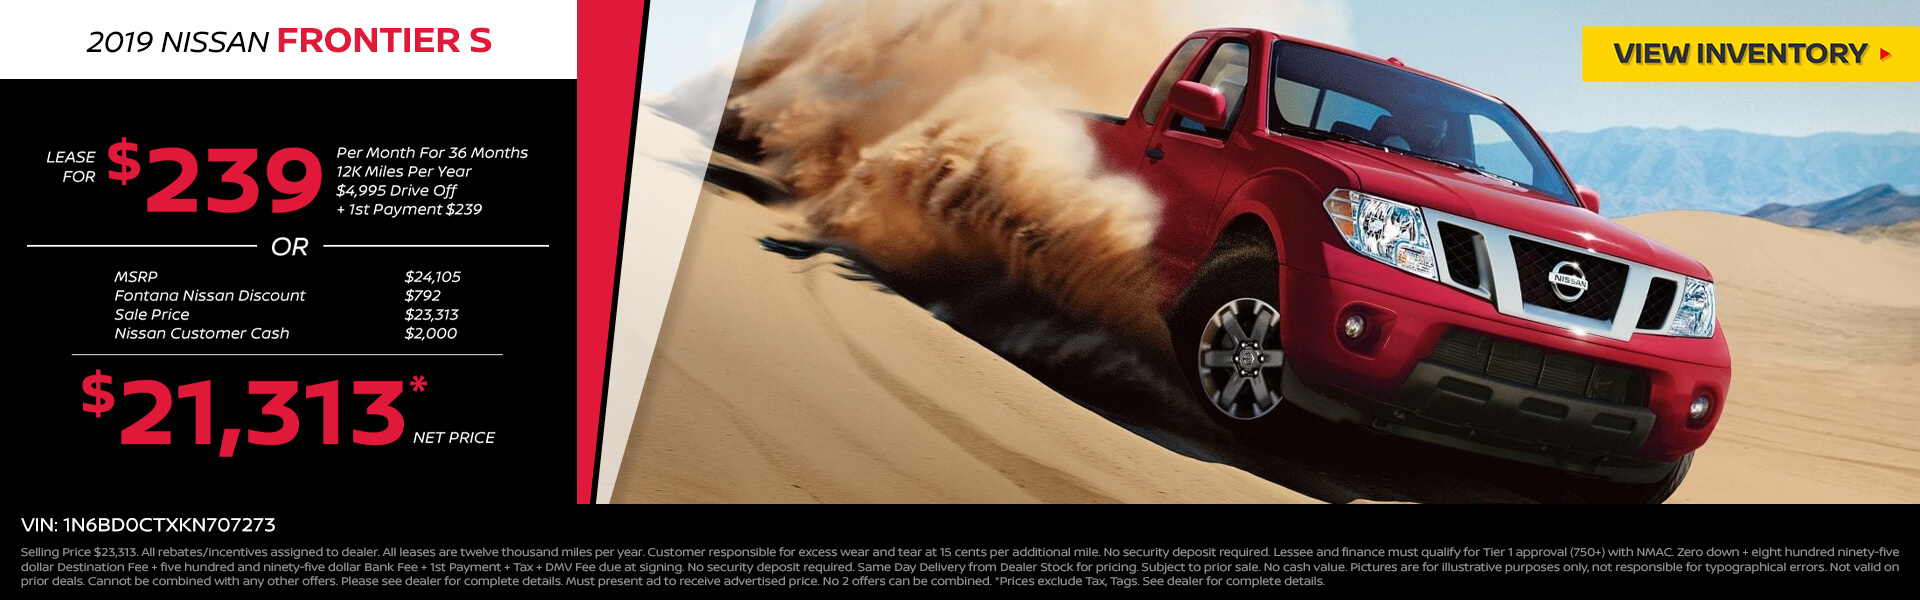 Nissan Frontier $239 Lease